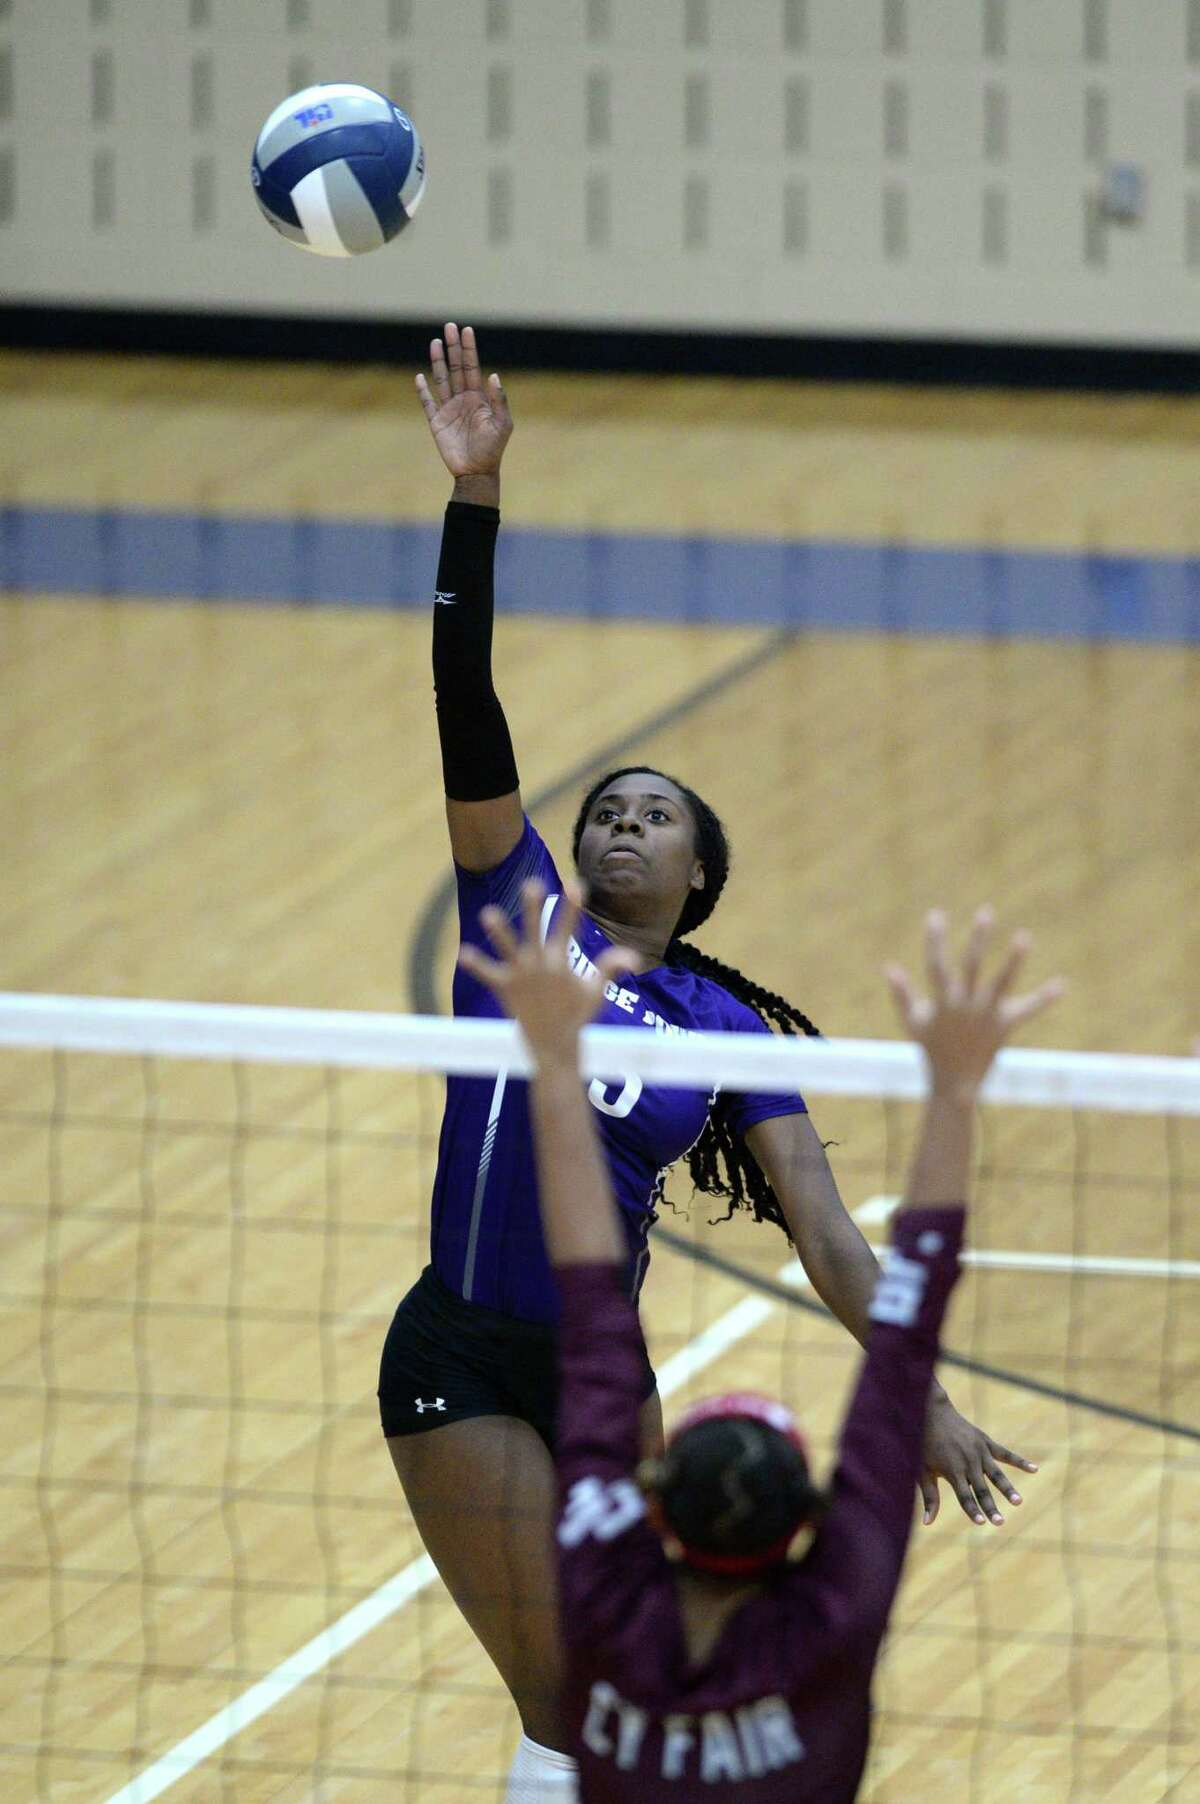 Tiana Davis (5) of Ridge Point hits a shot during the third set of the Region III-6A Final volleyball match between the Ridge Point Panthers and the Cy-Fair Bobcats on Saturday, November 16, 2019 at Wheeler Fieldhouse, Sugar Land, TX.